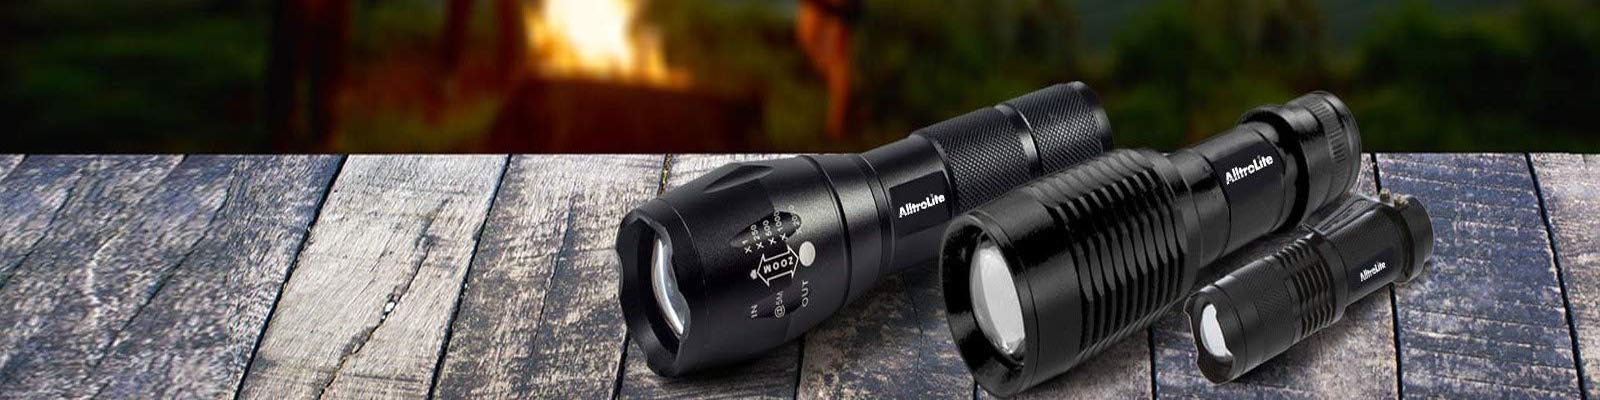 Best Flashlights worth to buy in 2019